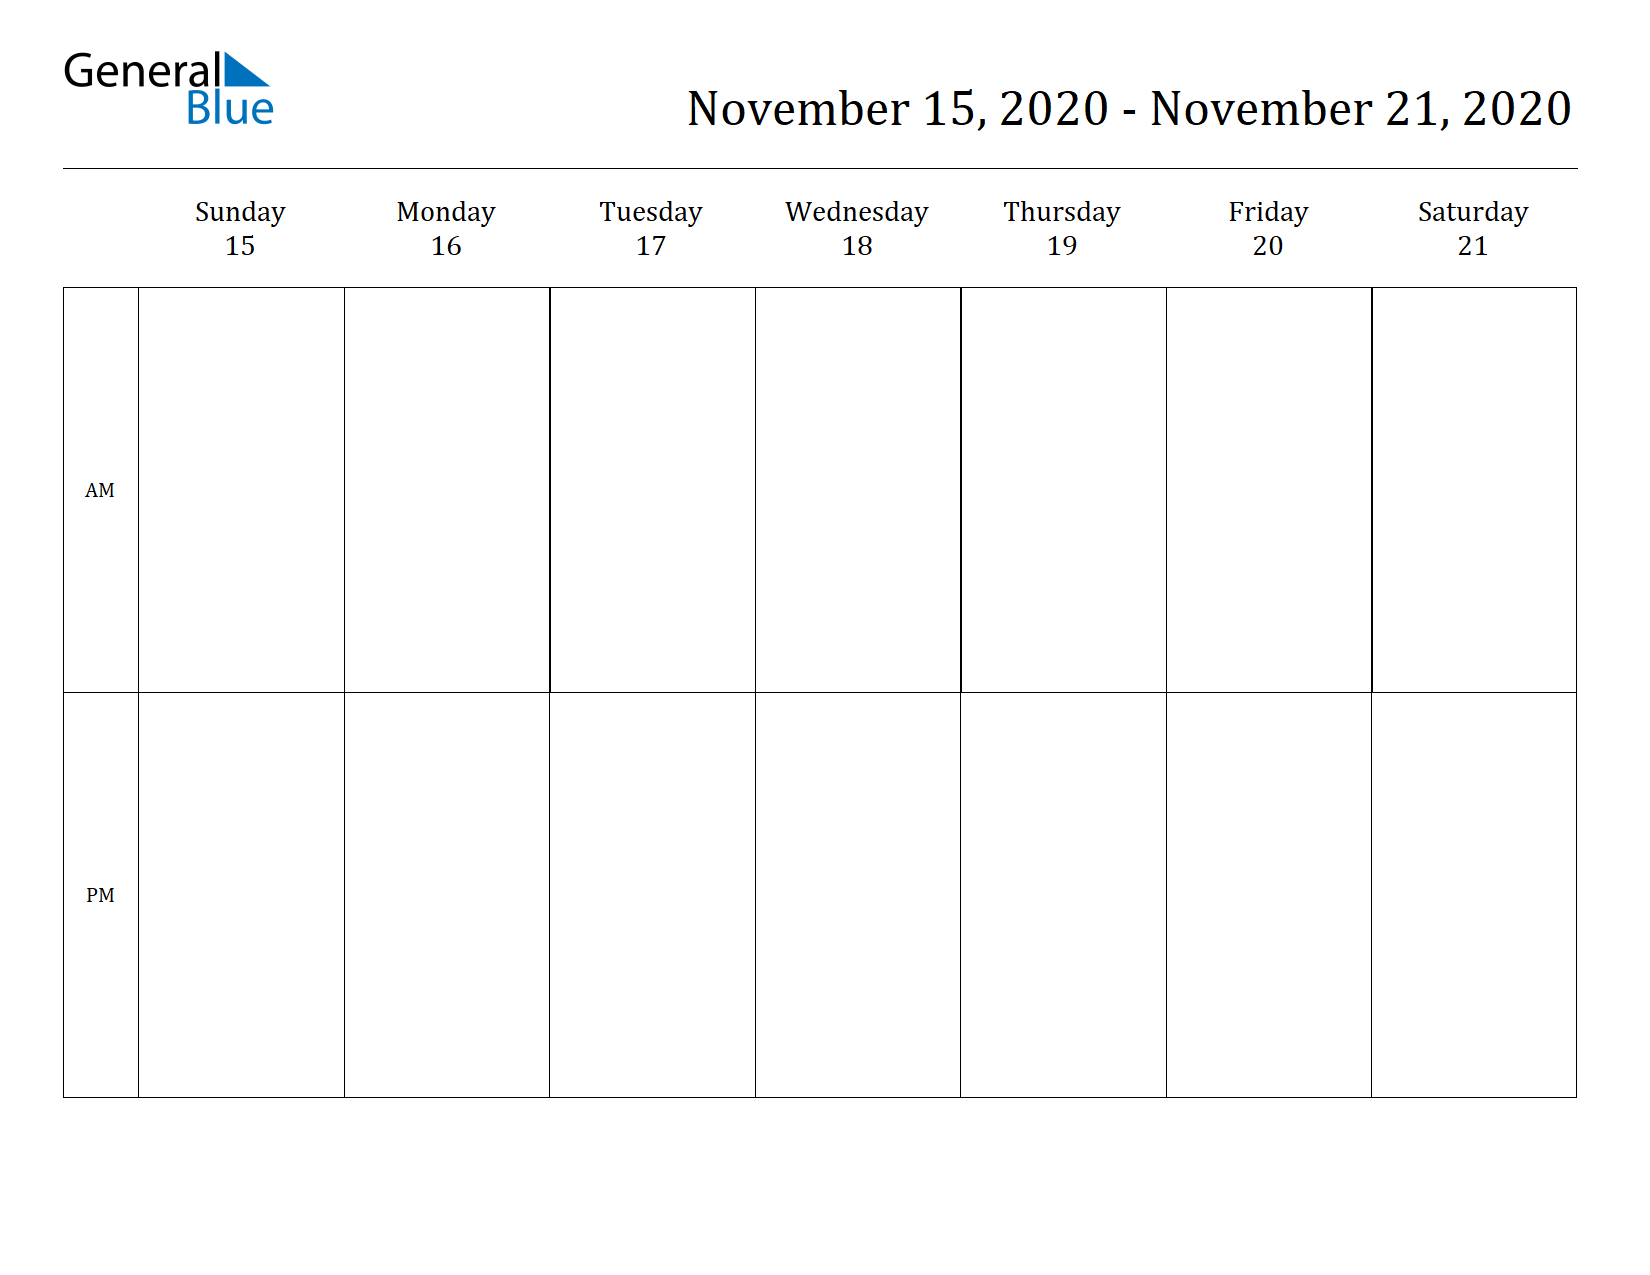 Weekly Calendar for Nov 15, 2020 to Nov 21, 2020